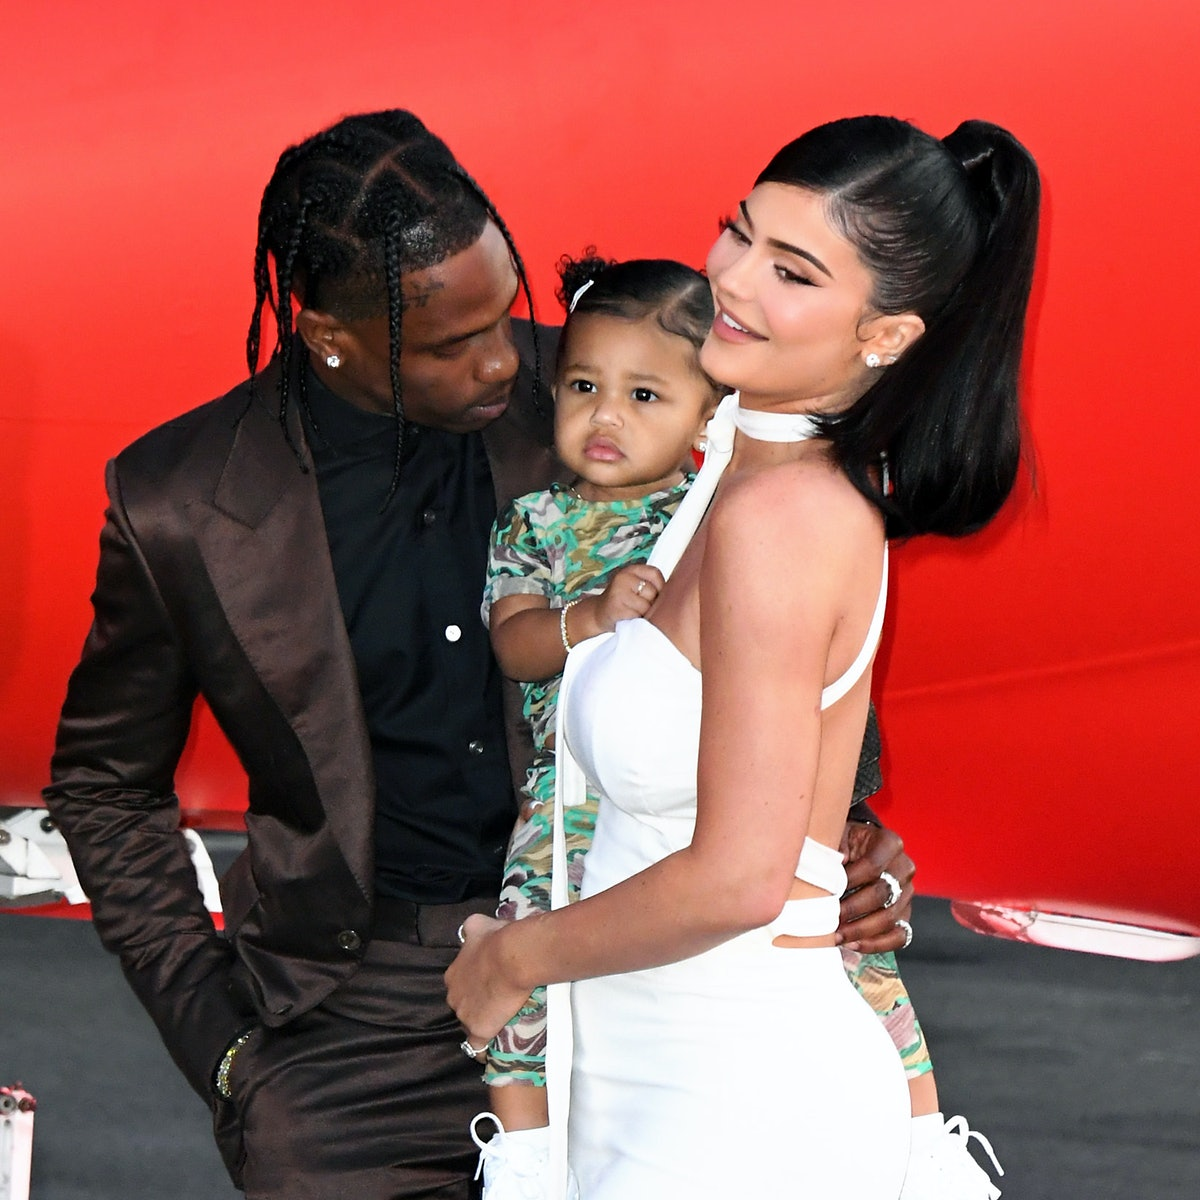 Kylie Jenner, Travis Scott, and their baby, Stormi, pose for a snapshot.